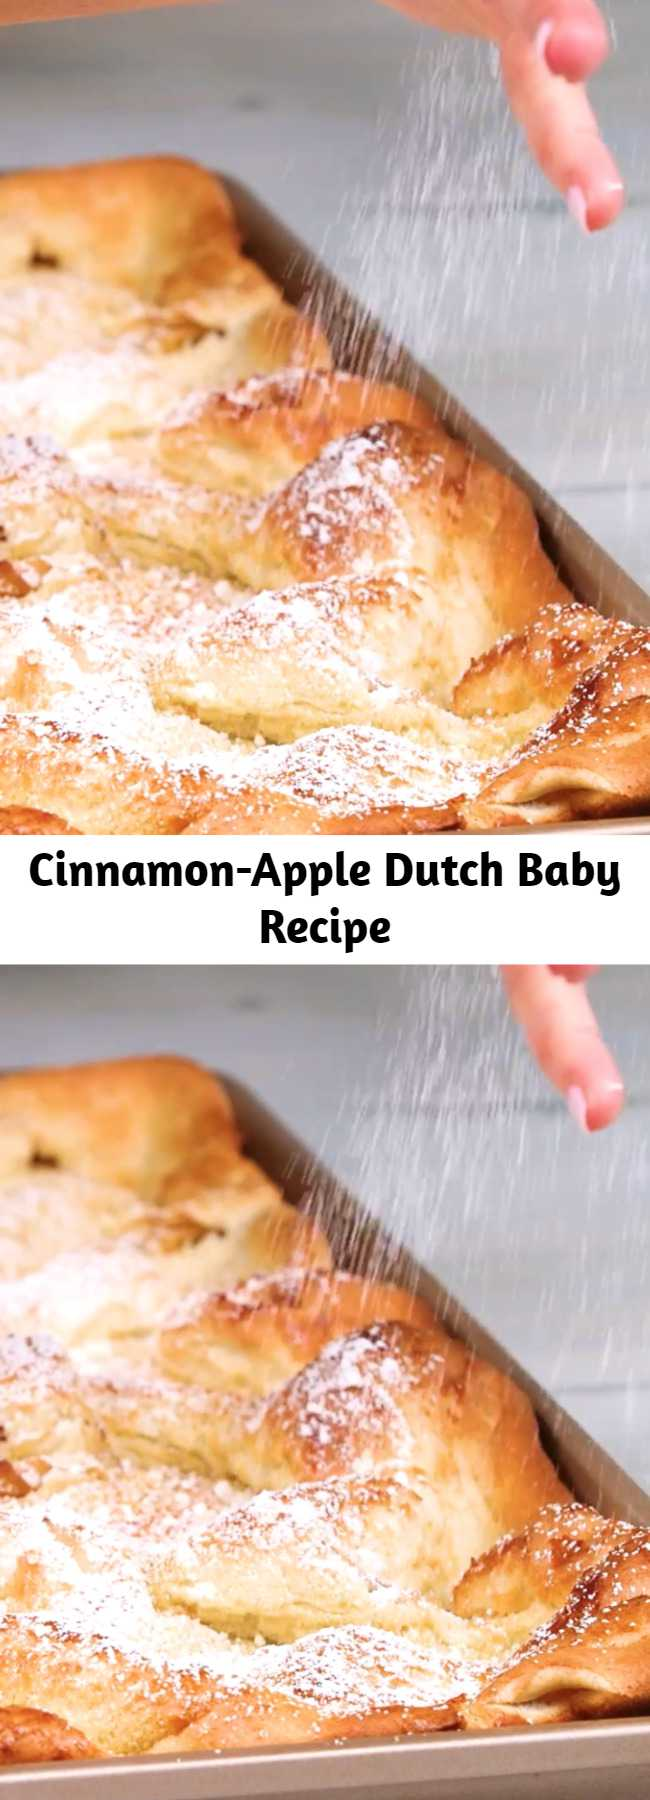 Cinnamon-Apple Dutch Baby Recipe - This sheet pan Dutch baby is a perfect dish to whip up for a group brunch, but can easily be transformed into dessert when served with a scoop of vanilla ice cream.